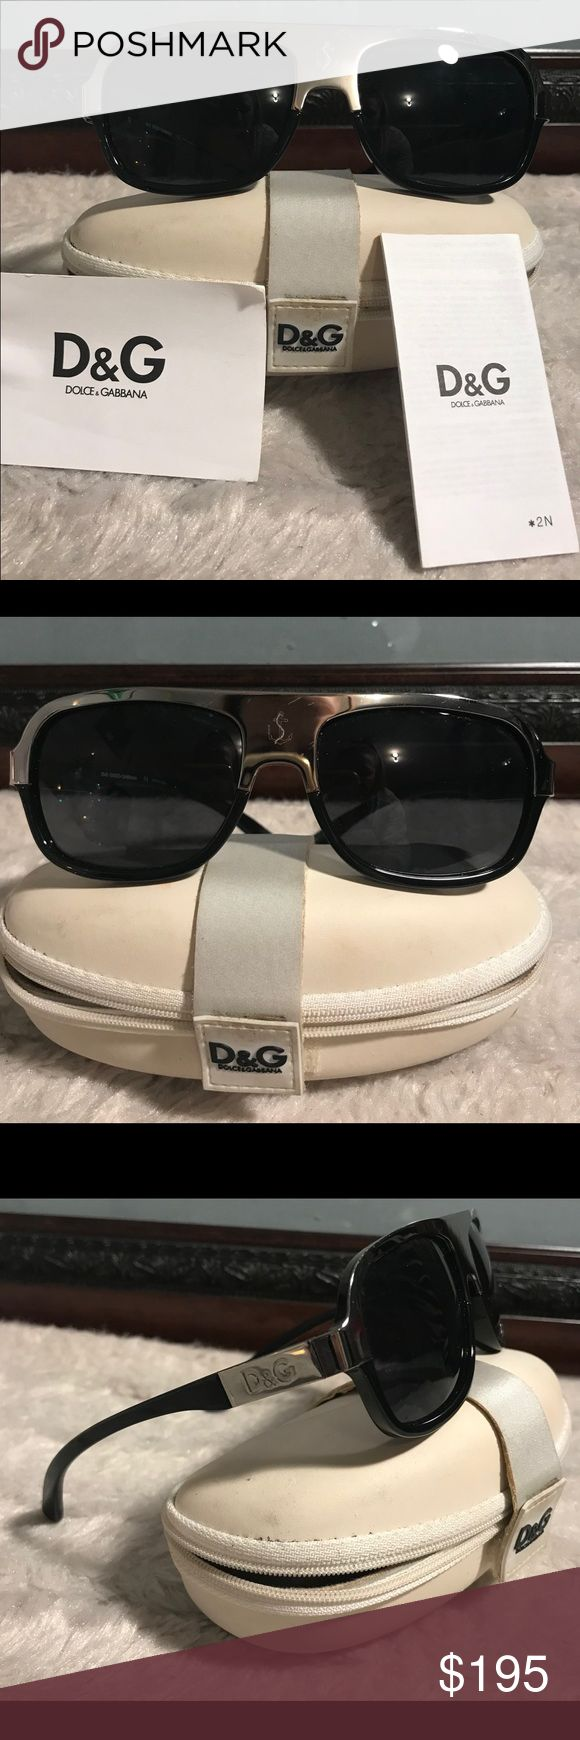 Beautiful Dolce & Gabbana sunglasses Very beautiful pair of authentic D &G sunglasses. Comes with authentic case. No scratches to the lenses or earpieces there is one tiny scratch on the middle part near the nose but barely noticeable at all there is the emblem detail near the nose piece. Serial number on earpiece. Trade value is higher Trade value $225 Dolce & Gabbana Accessories Sunglasses